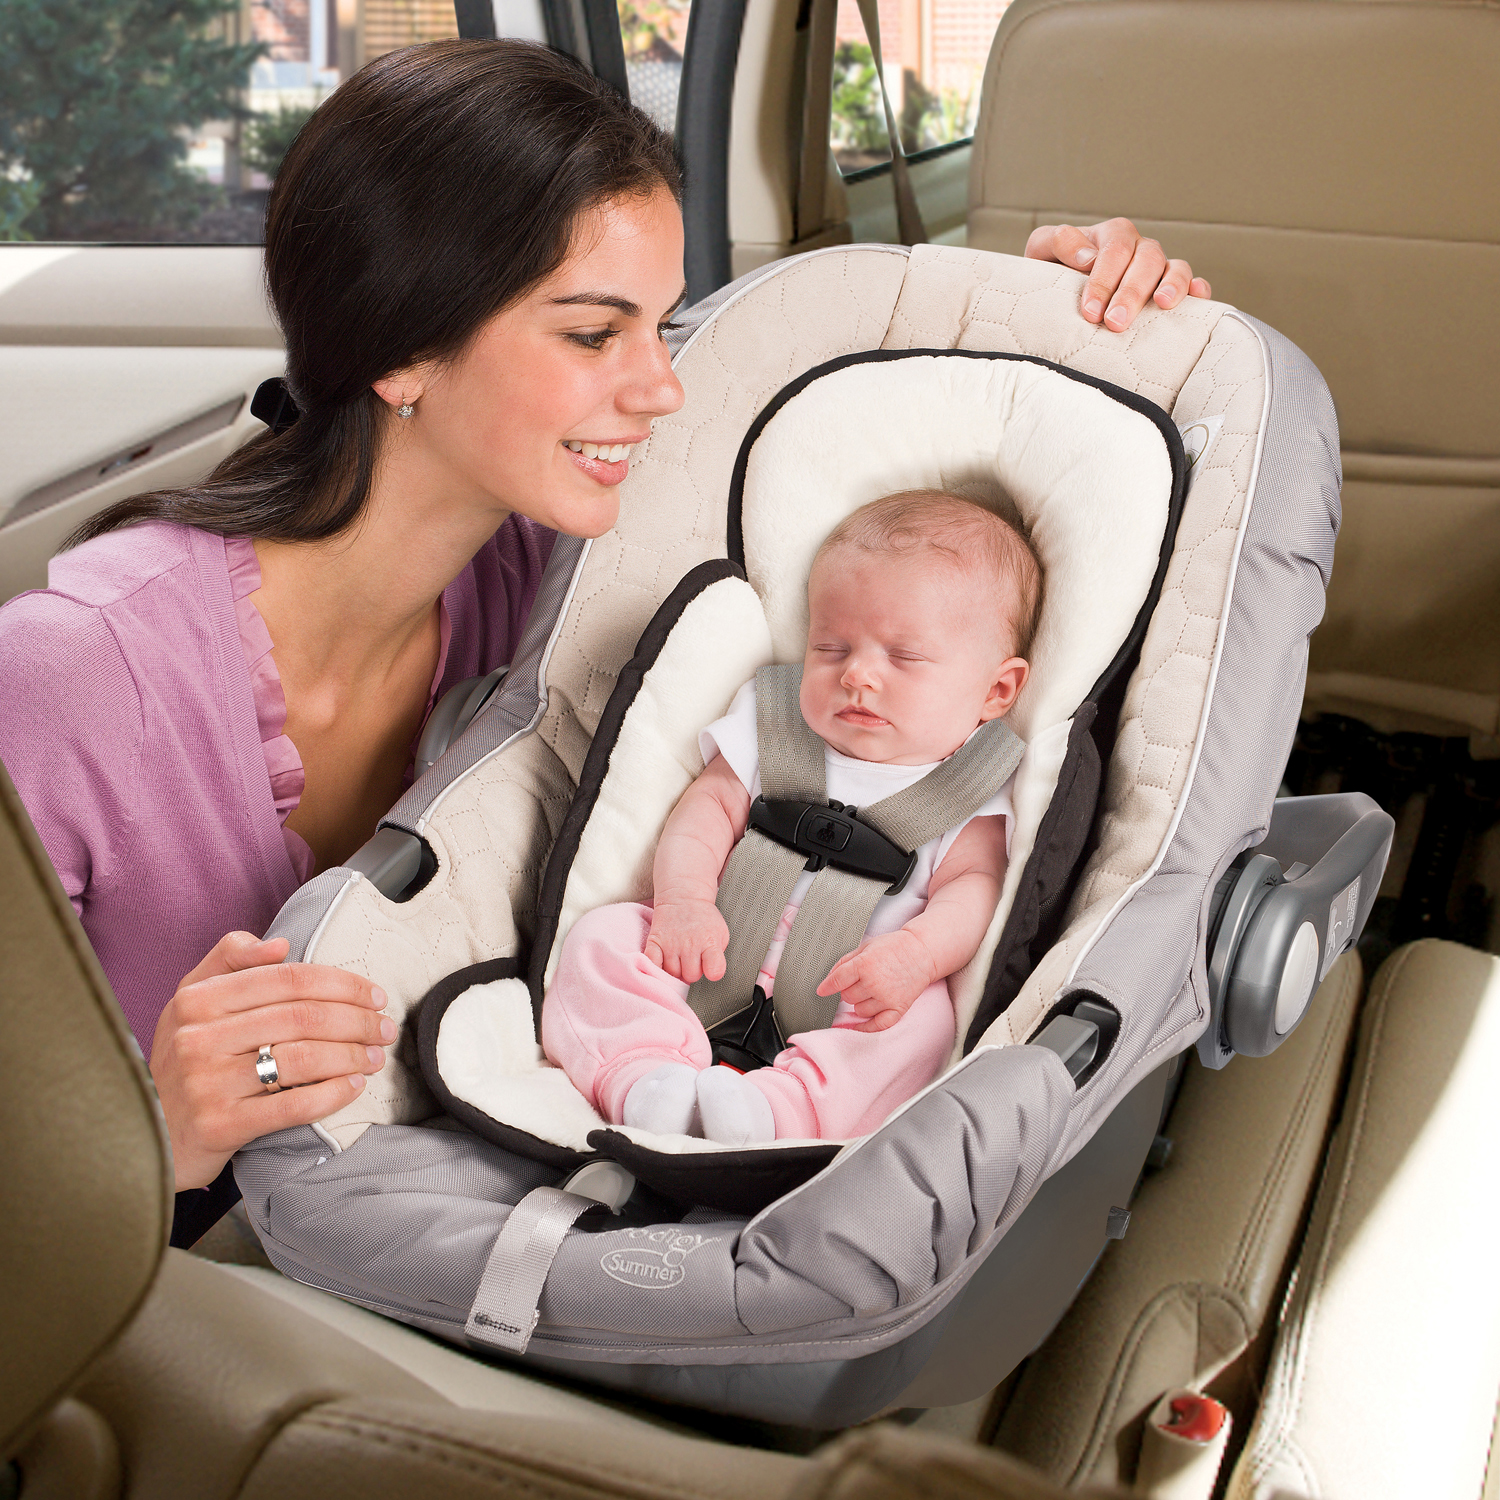 Newborn In Pram Seat Baby Head And Body Support Pillow Infant Car Seat Insert